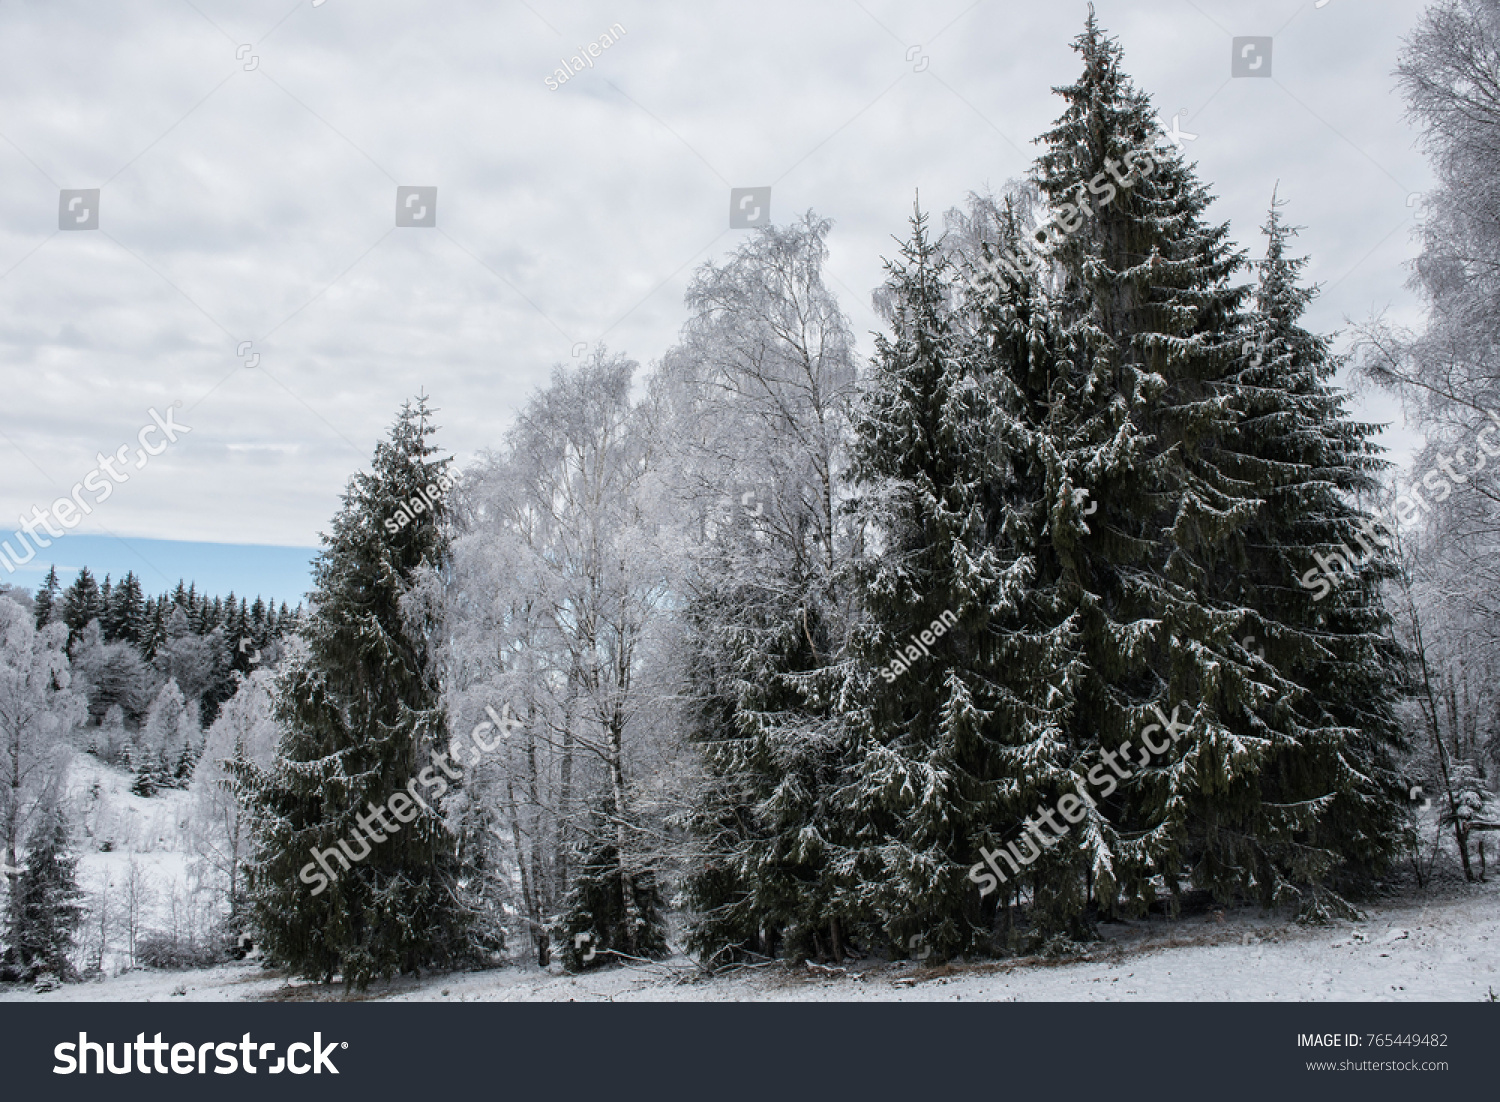 Christmas background with snowy trees winter holidays greetings christmas background with snowy trees winter holidays greetings ez canvas m4hsunfo